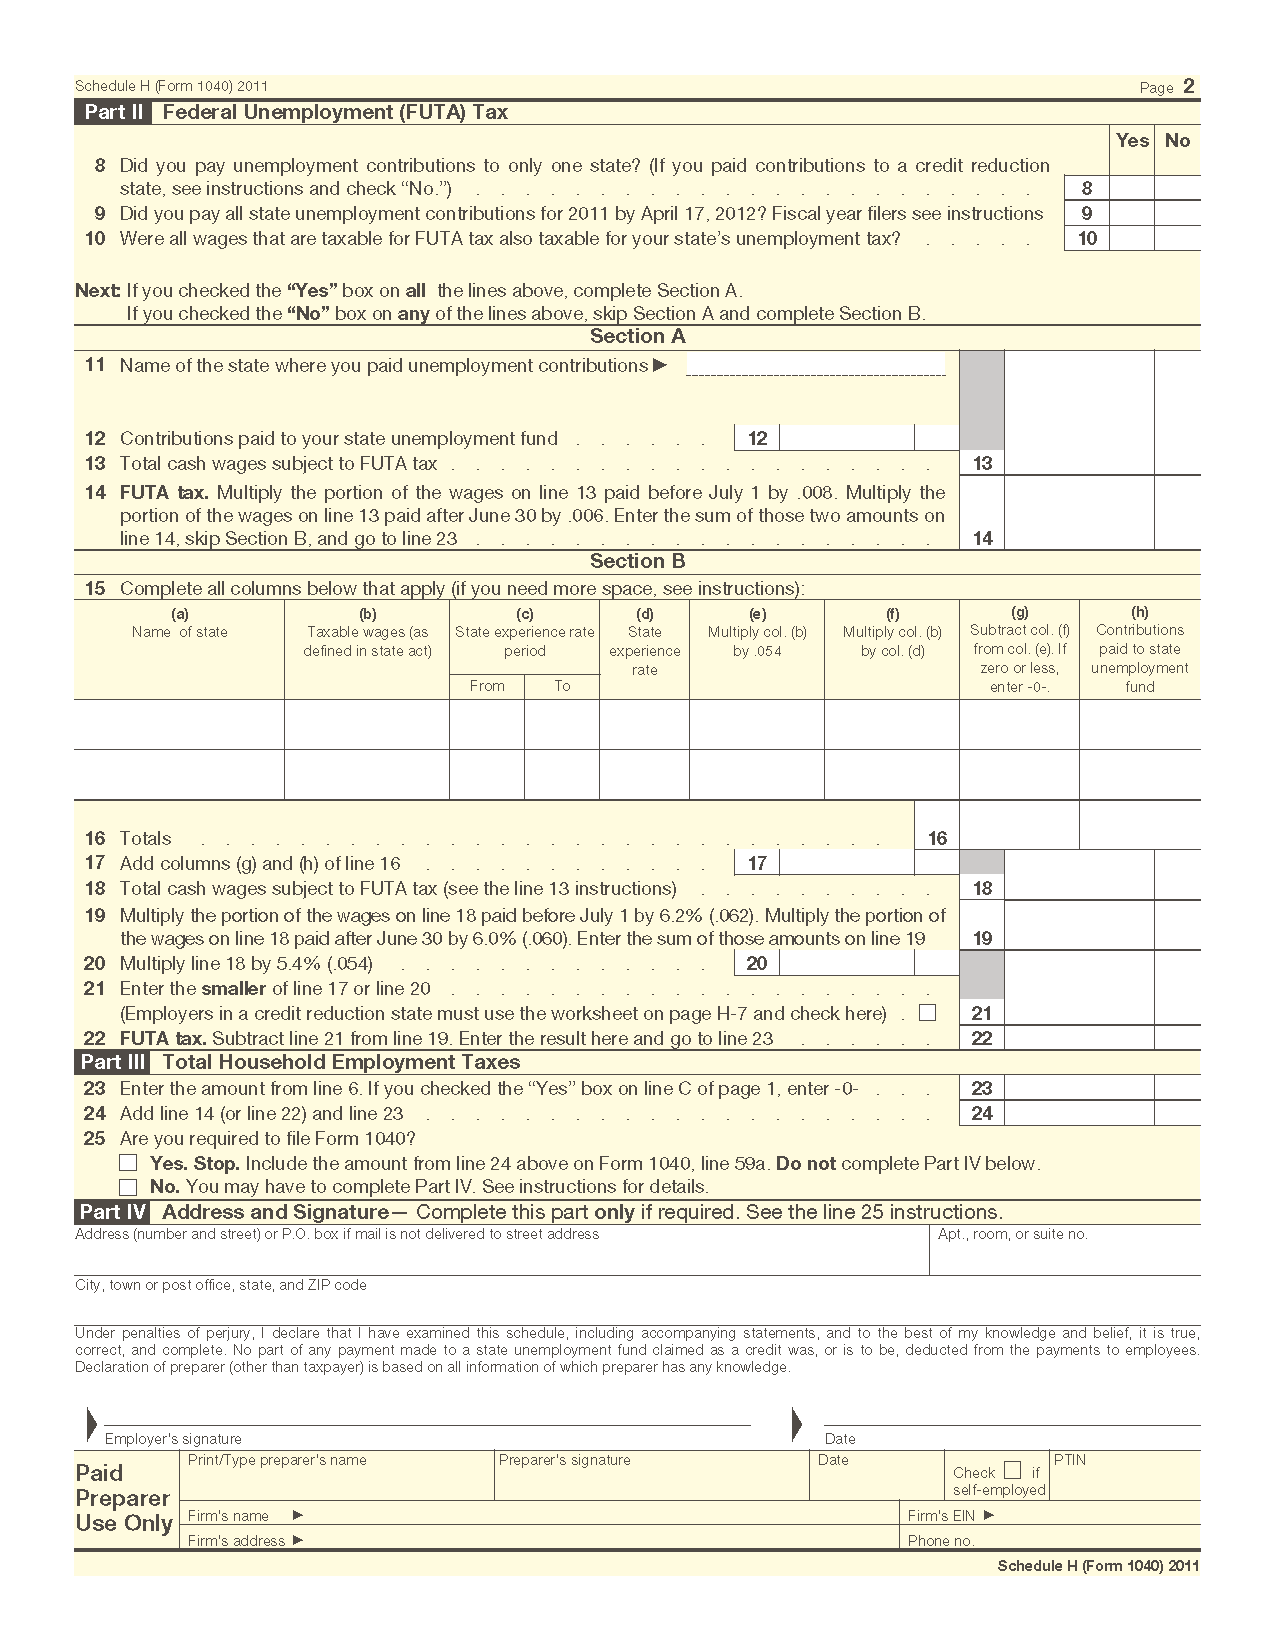 Federal Income Tax Form 1040